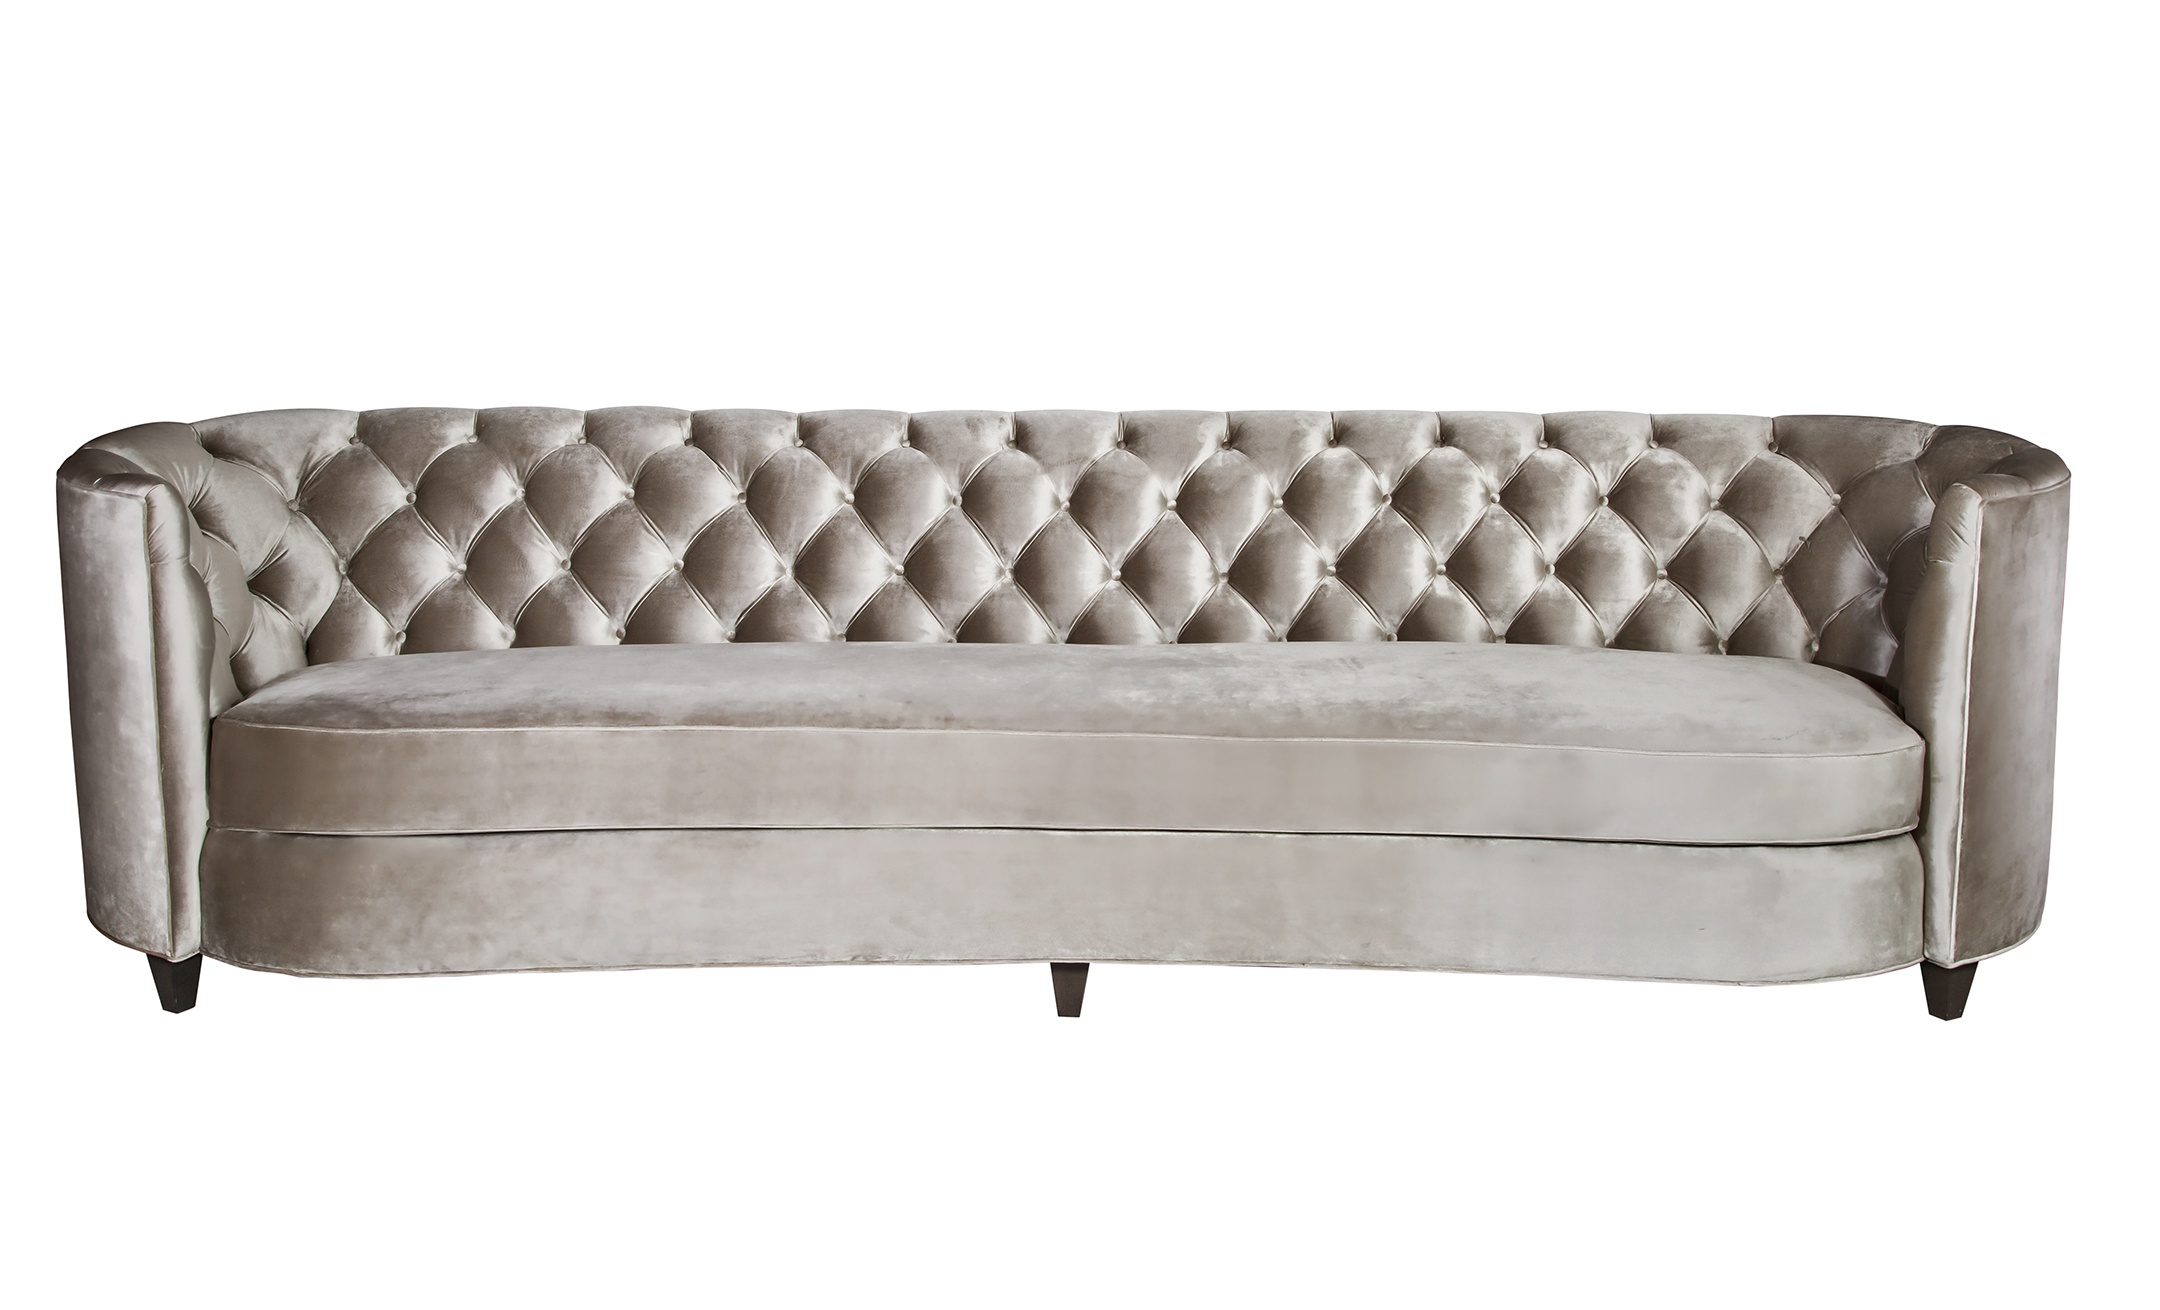 Diamond Tufting Samuelson Furniture 8638 Custom Sofa